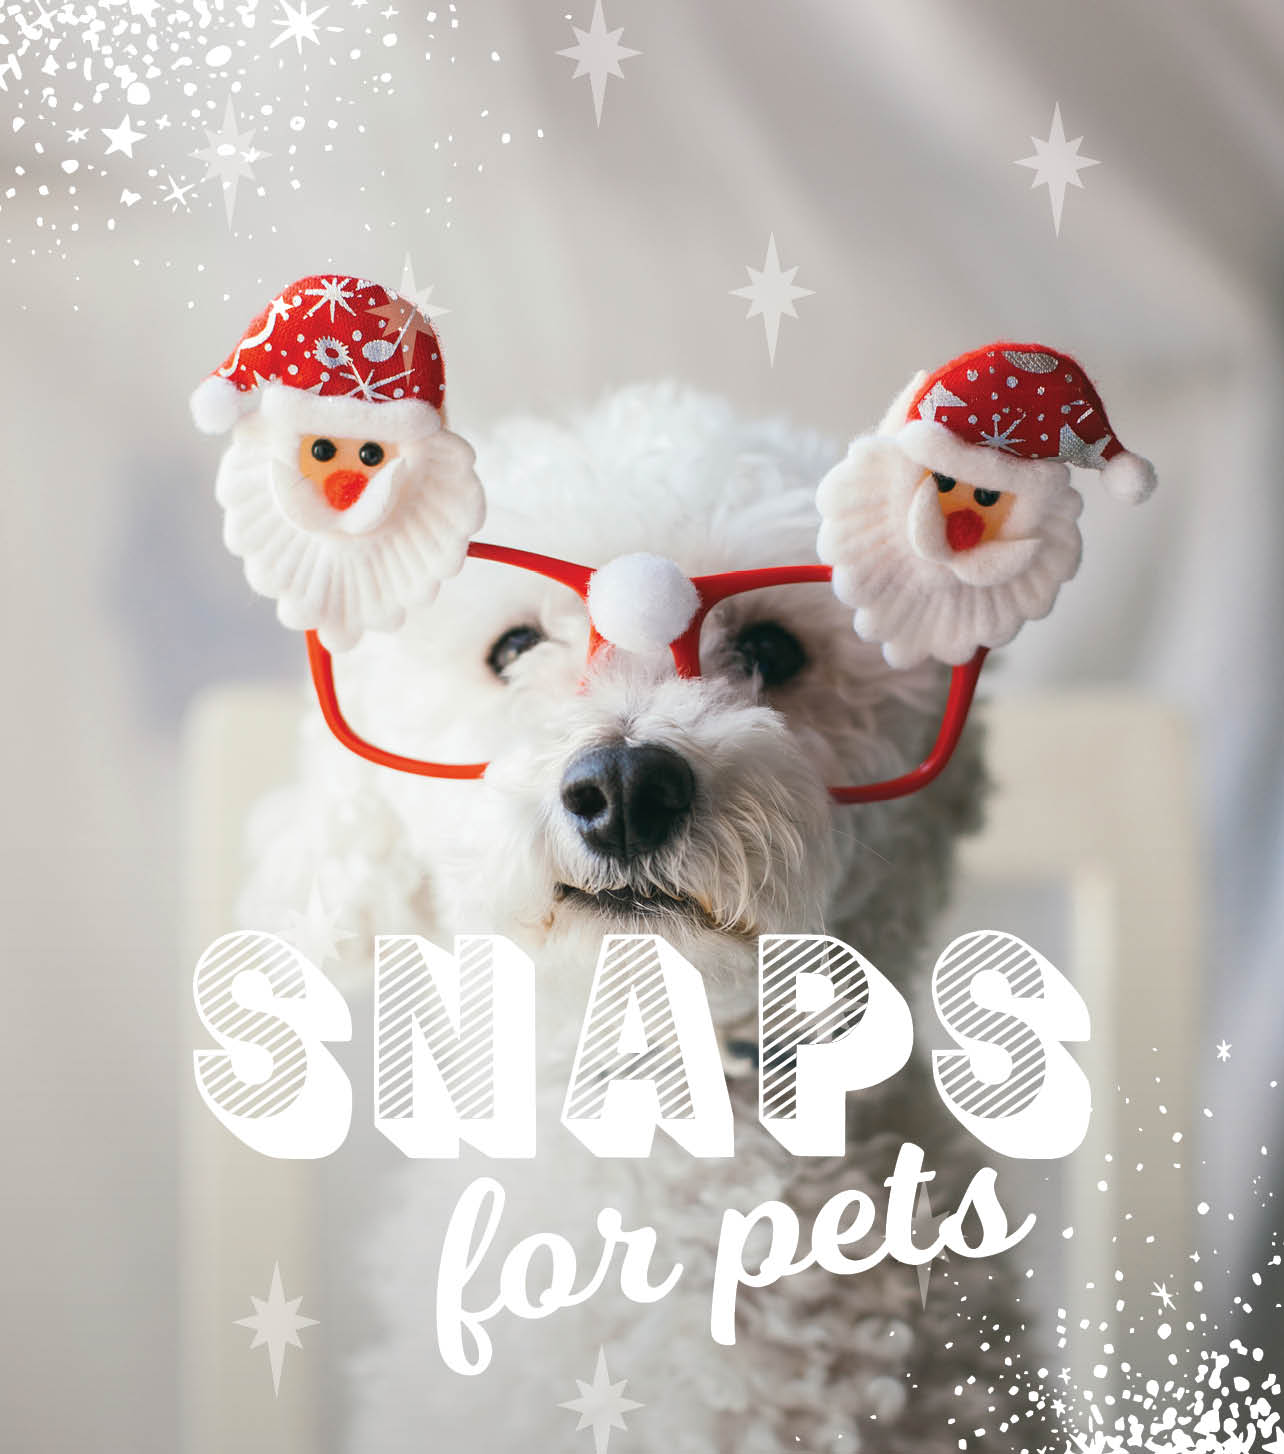 CH4806_Xmas 2019_Web Tiles_Snaps for pets_624x727px